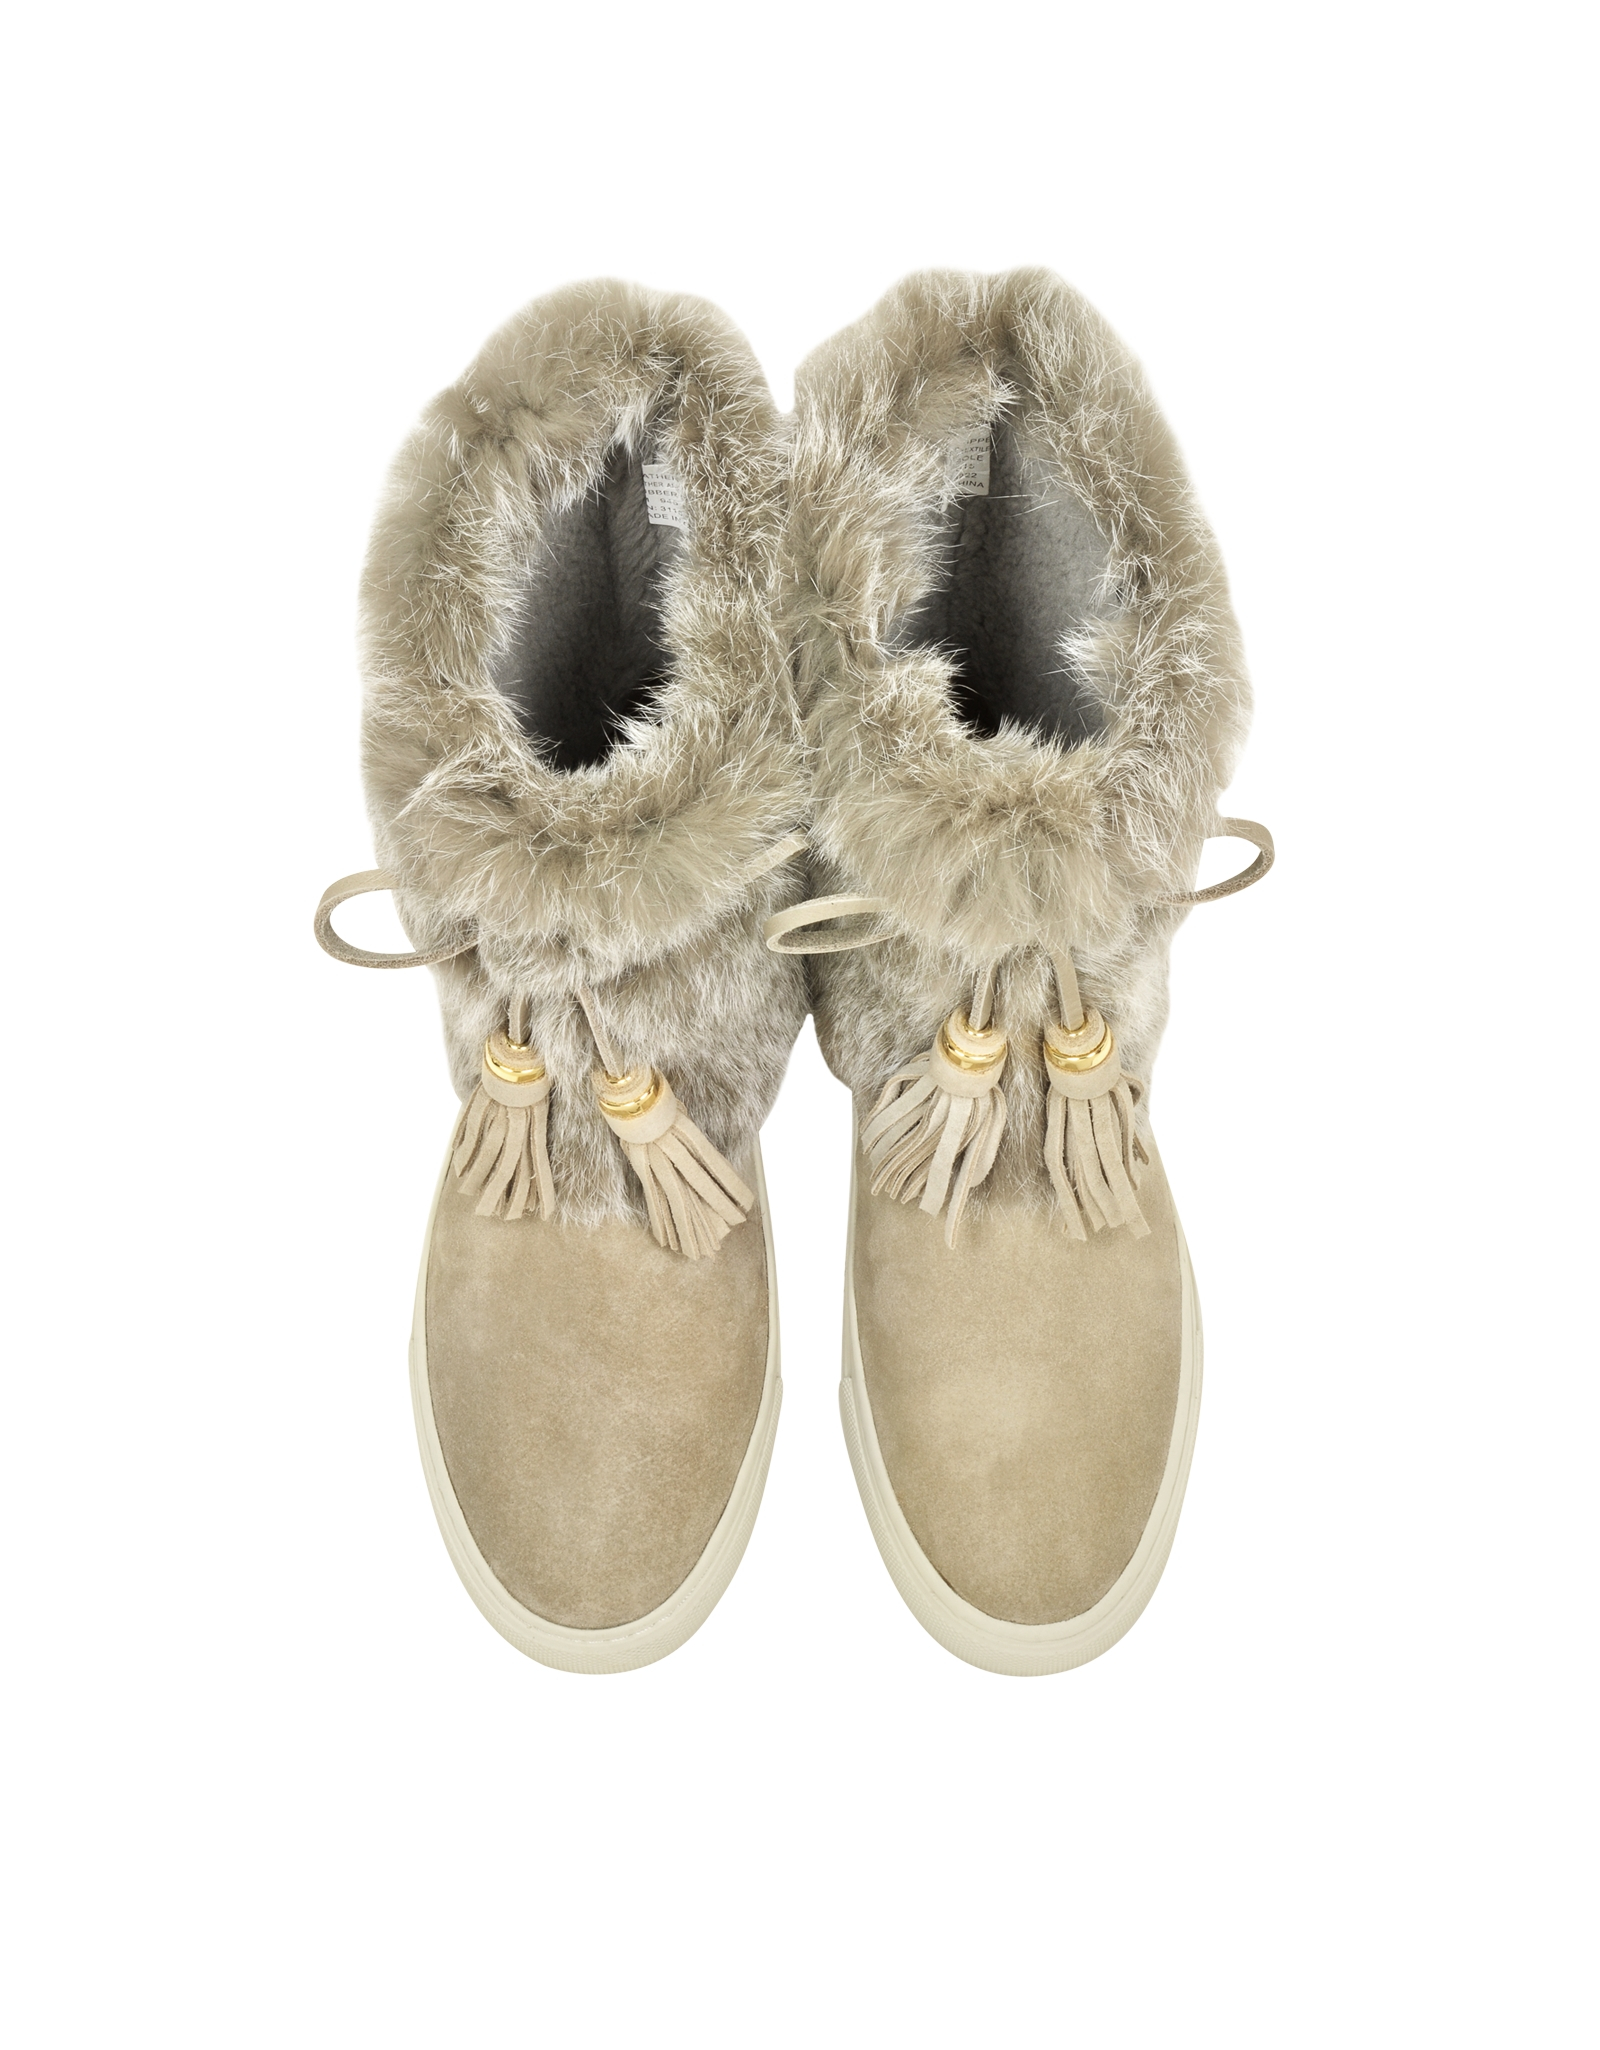 52ee9e6c505d Lyst - Tory Burch Anjelica Dark Knot Suede And Rabbit Fur Boots in Green